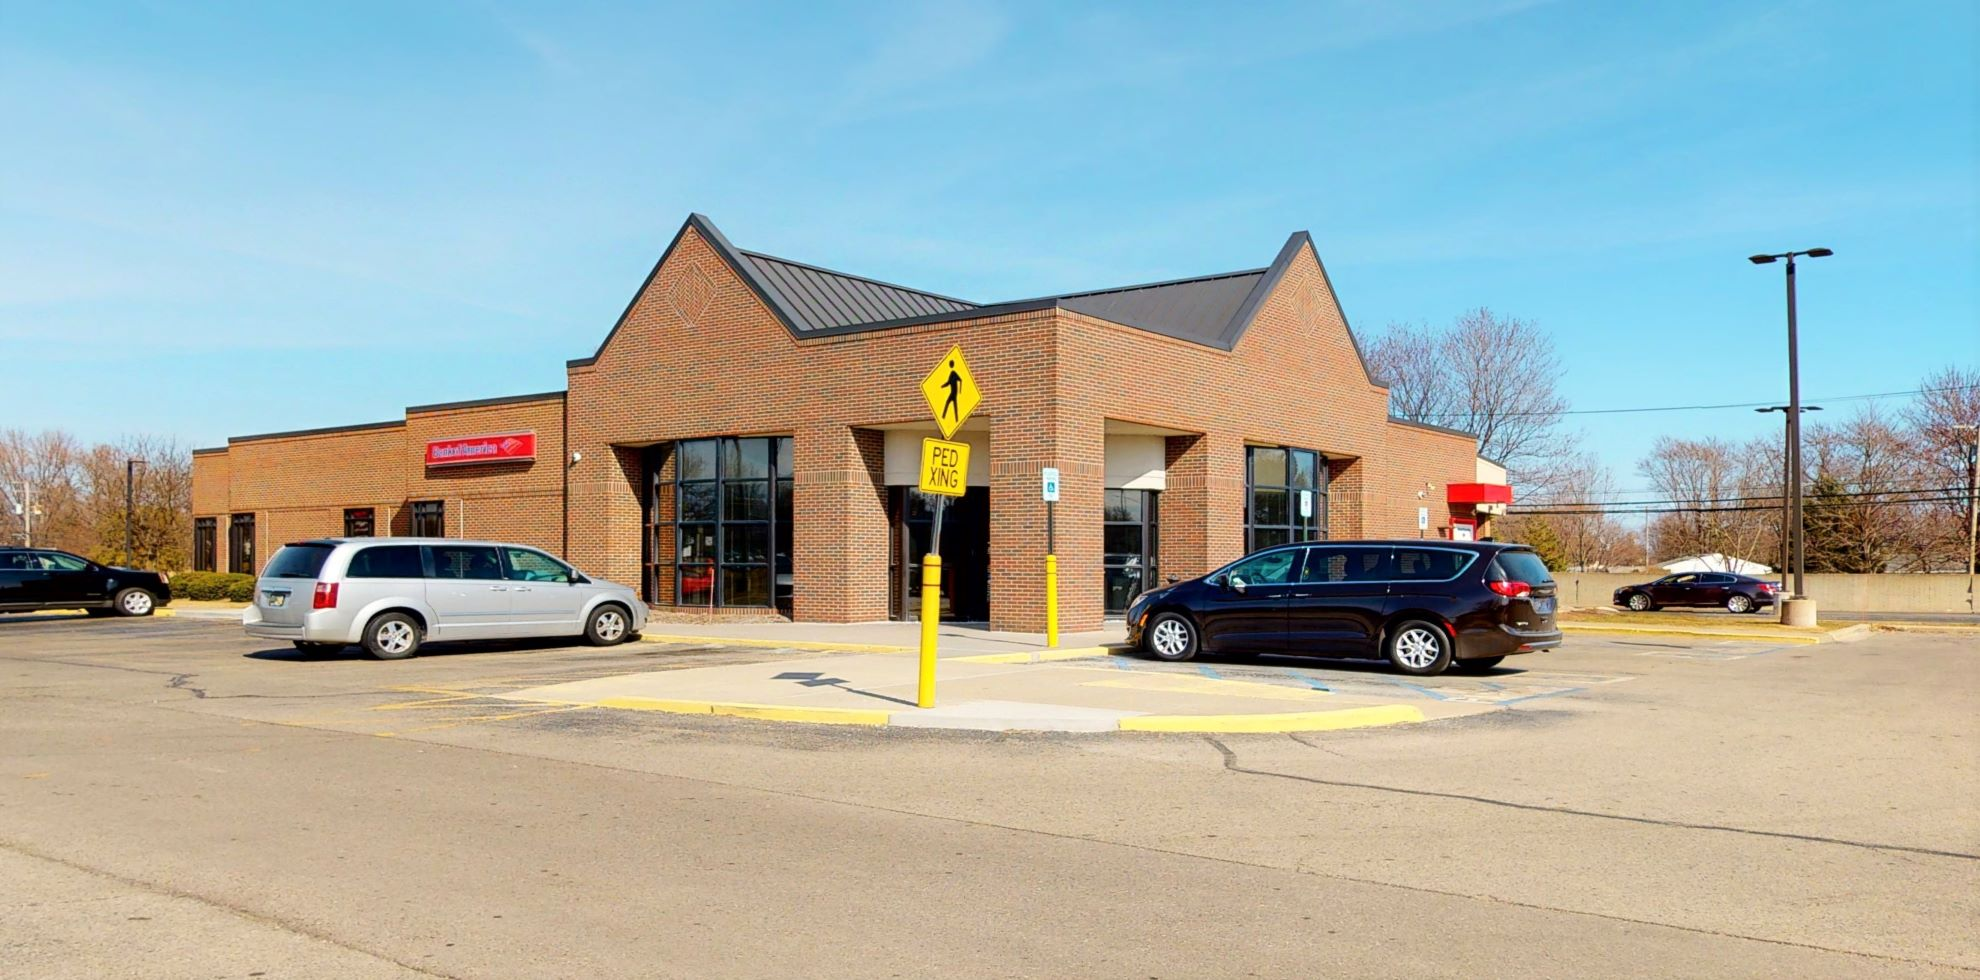 Bank of America financial center with drive-thru ATM | 37370 S Gratiot Ave, Clinton Township, MI 48036